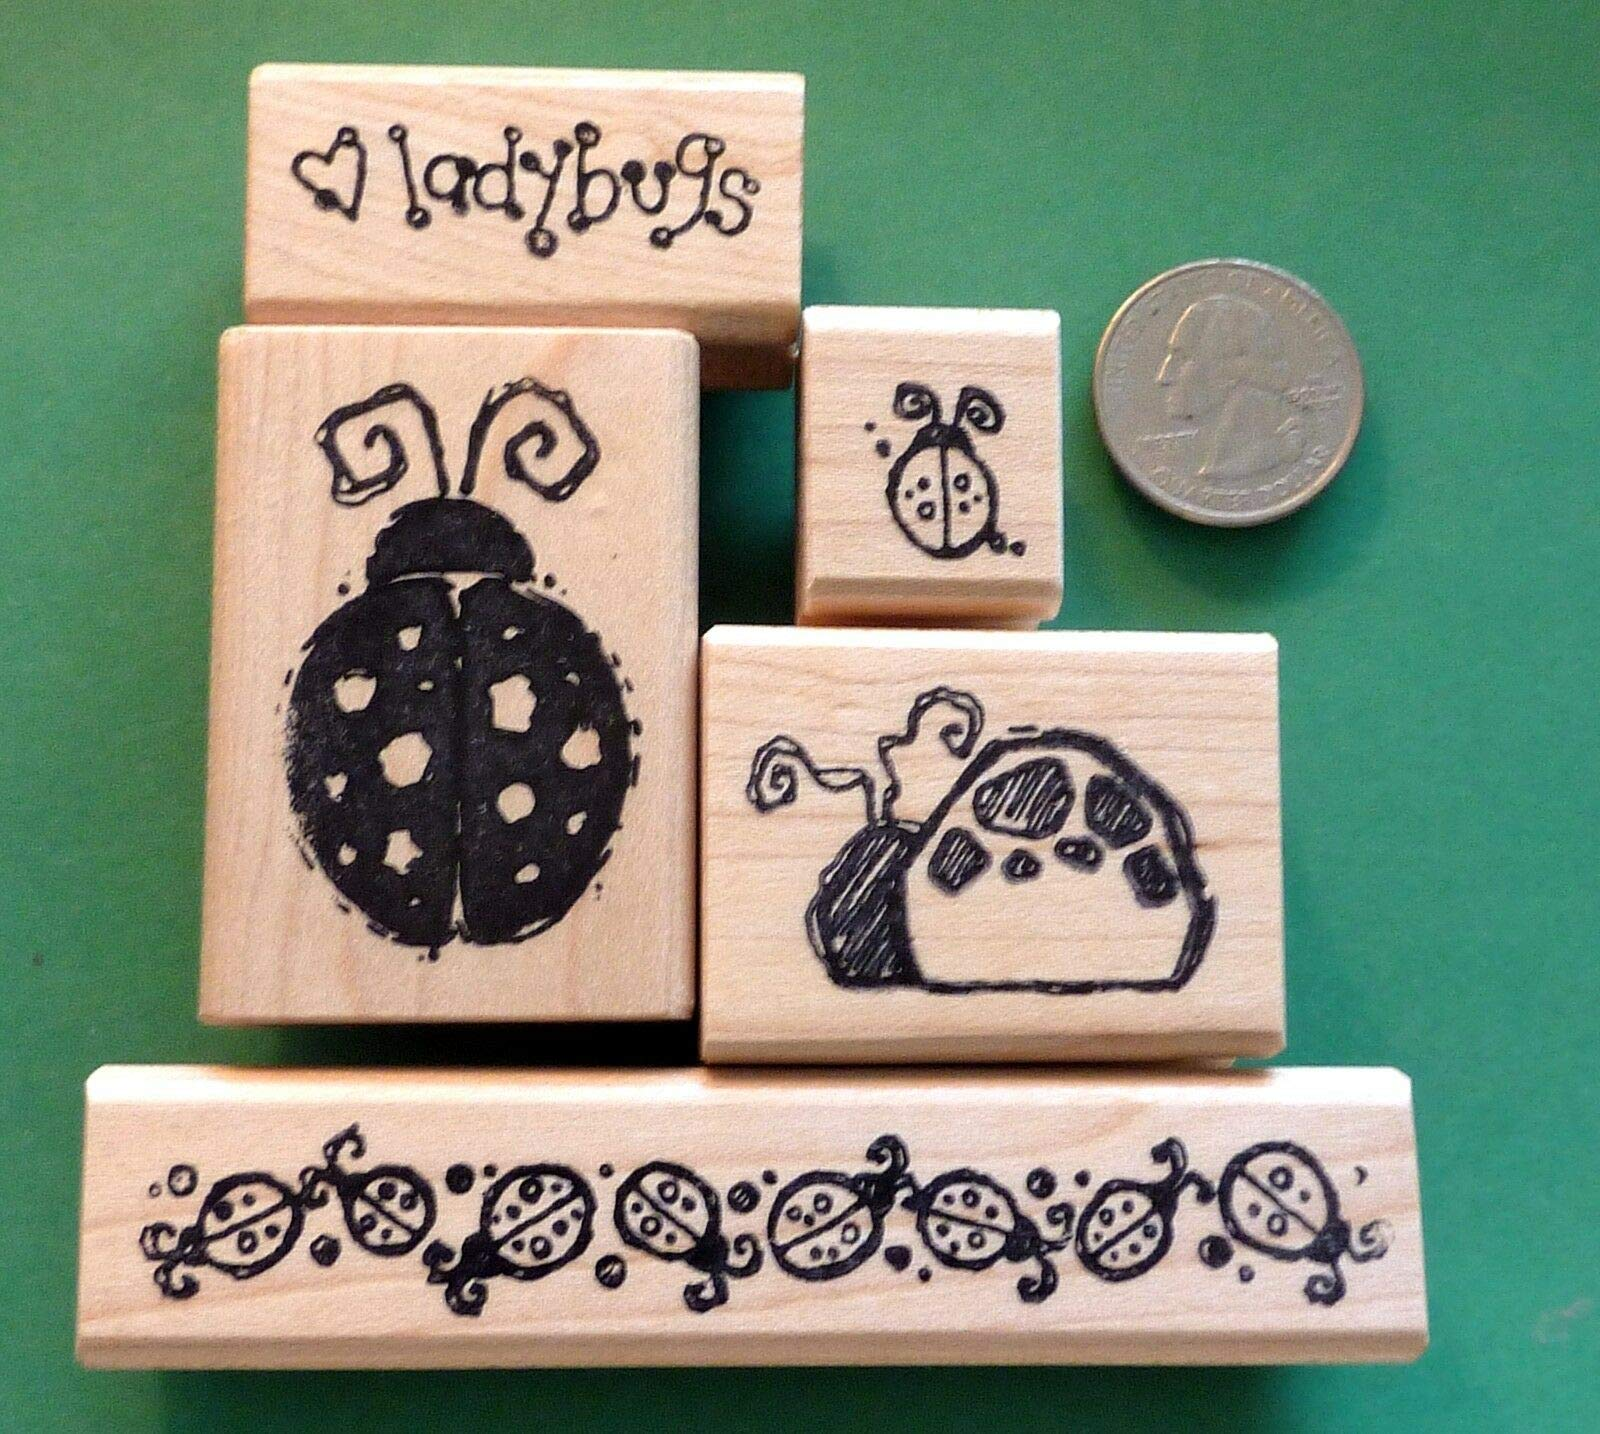 Ladybug Lover's Rubber Stamp Set of 5, Wood Mounted - Rubber Stamp Wood Carving Blocks by Wooden Stamps